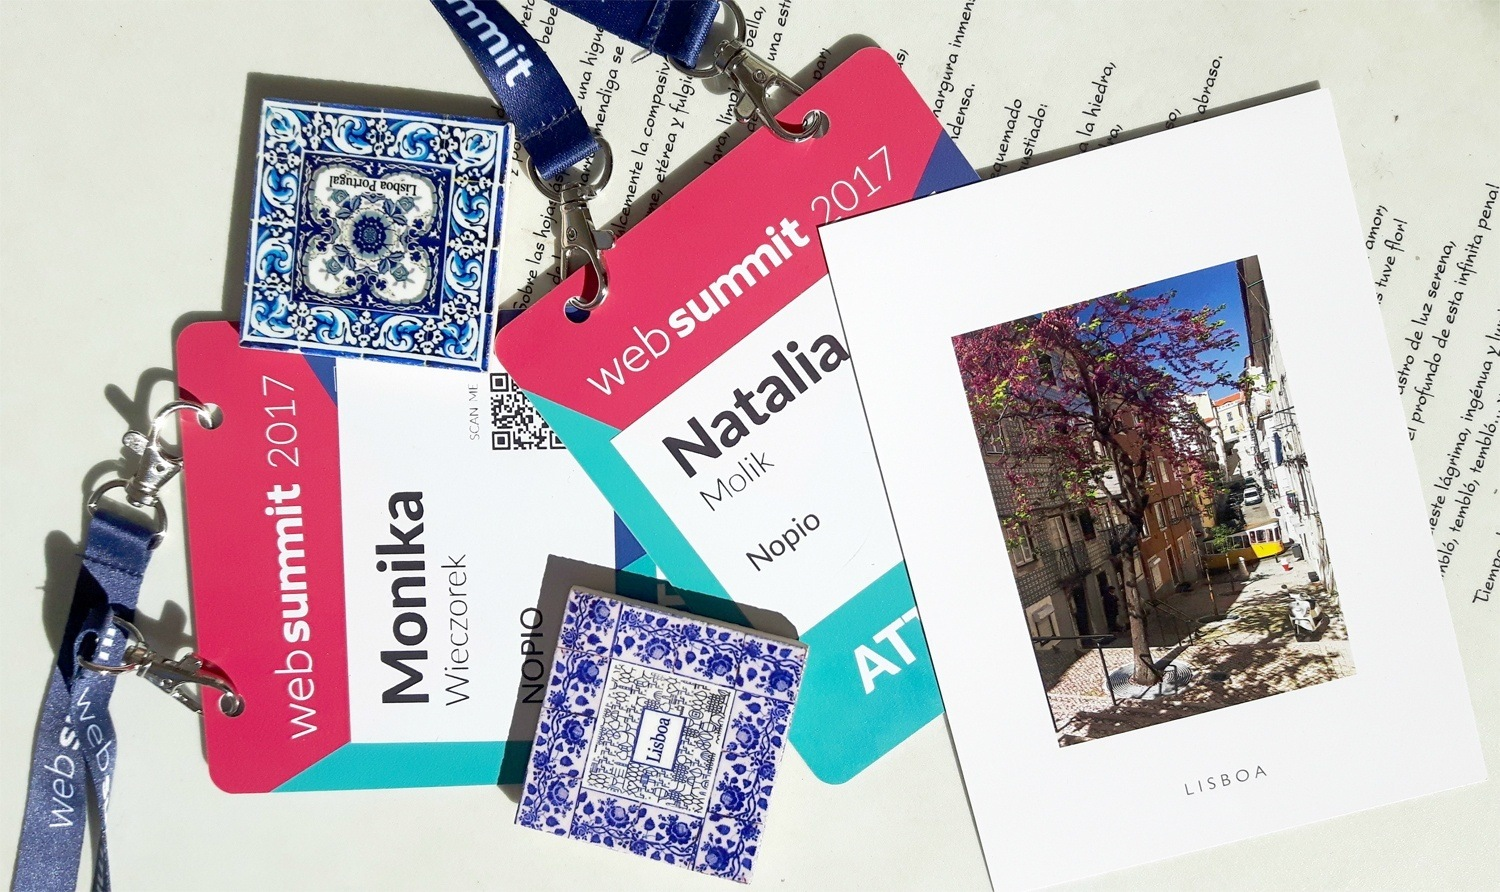 Web Summit Lisbon 2017 Badges